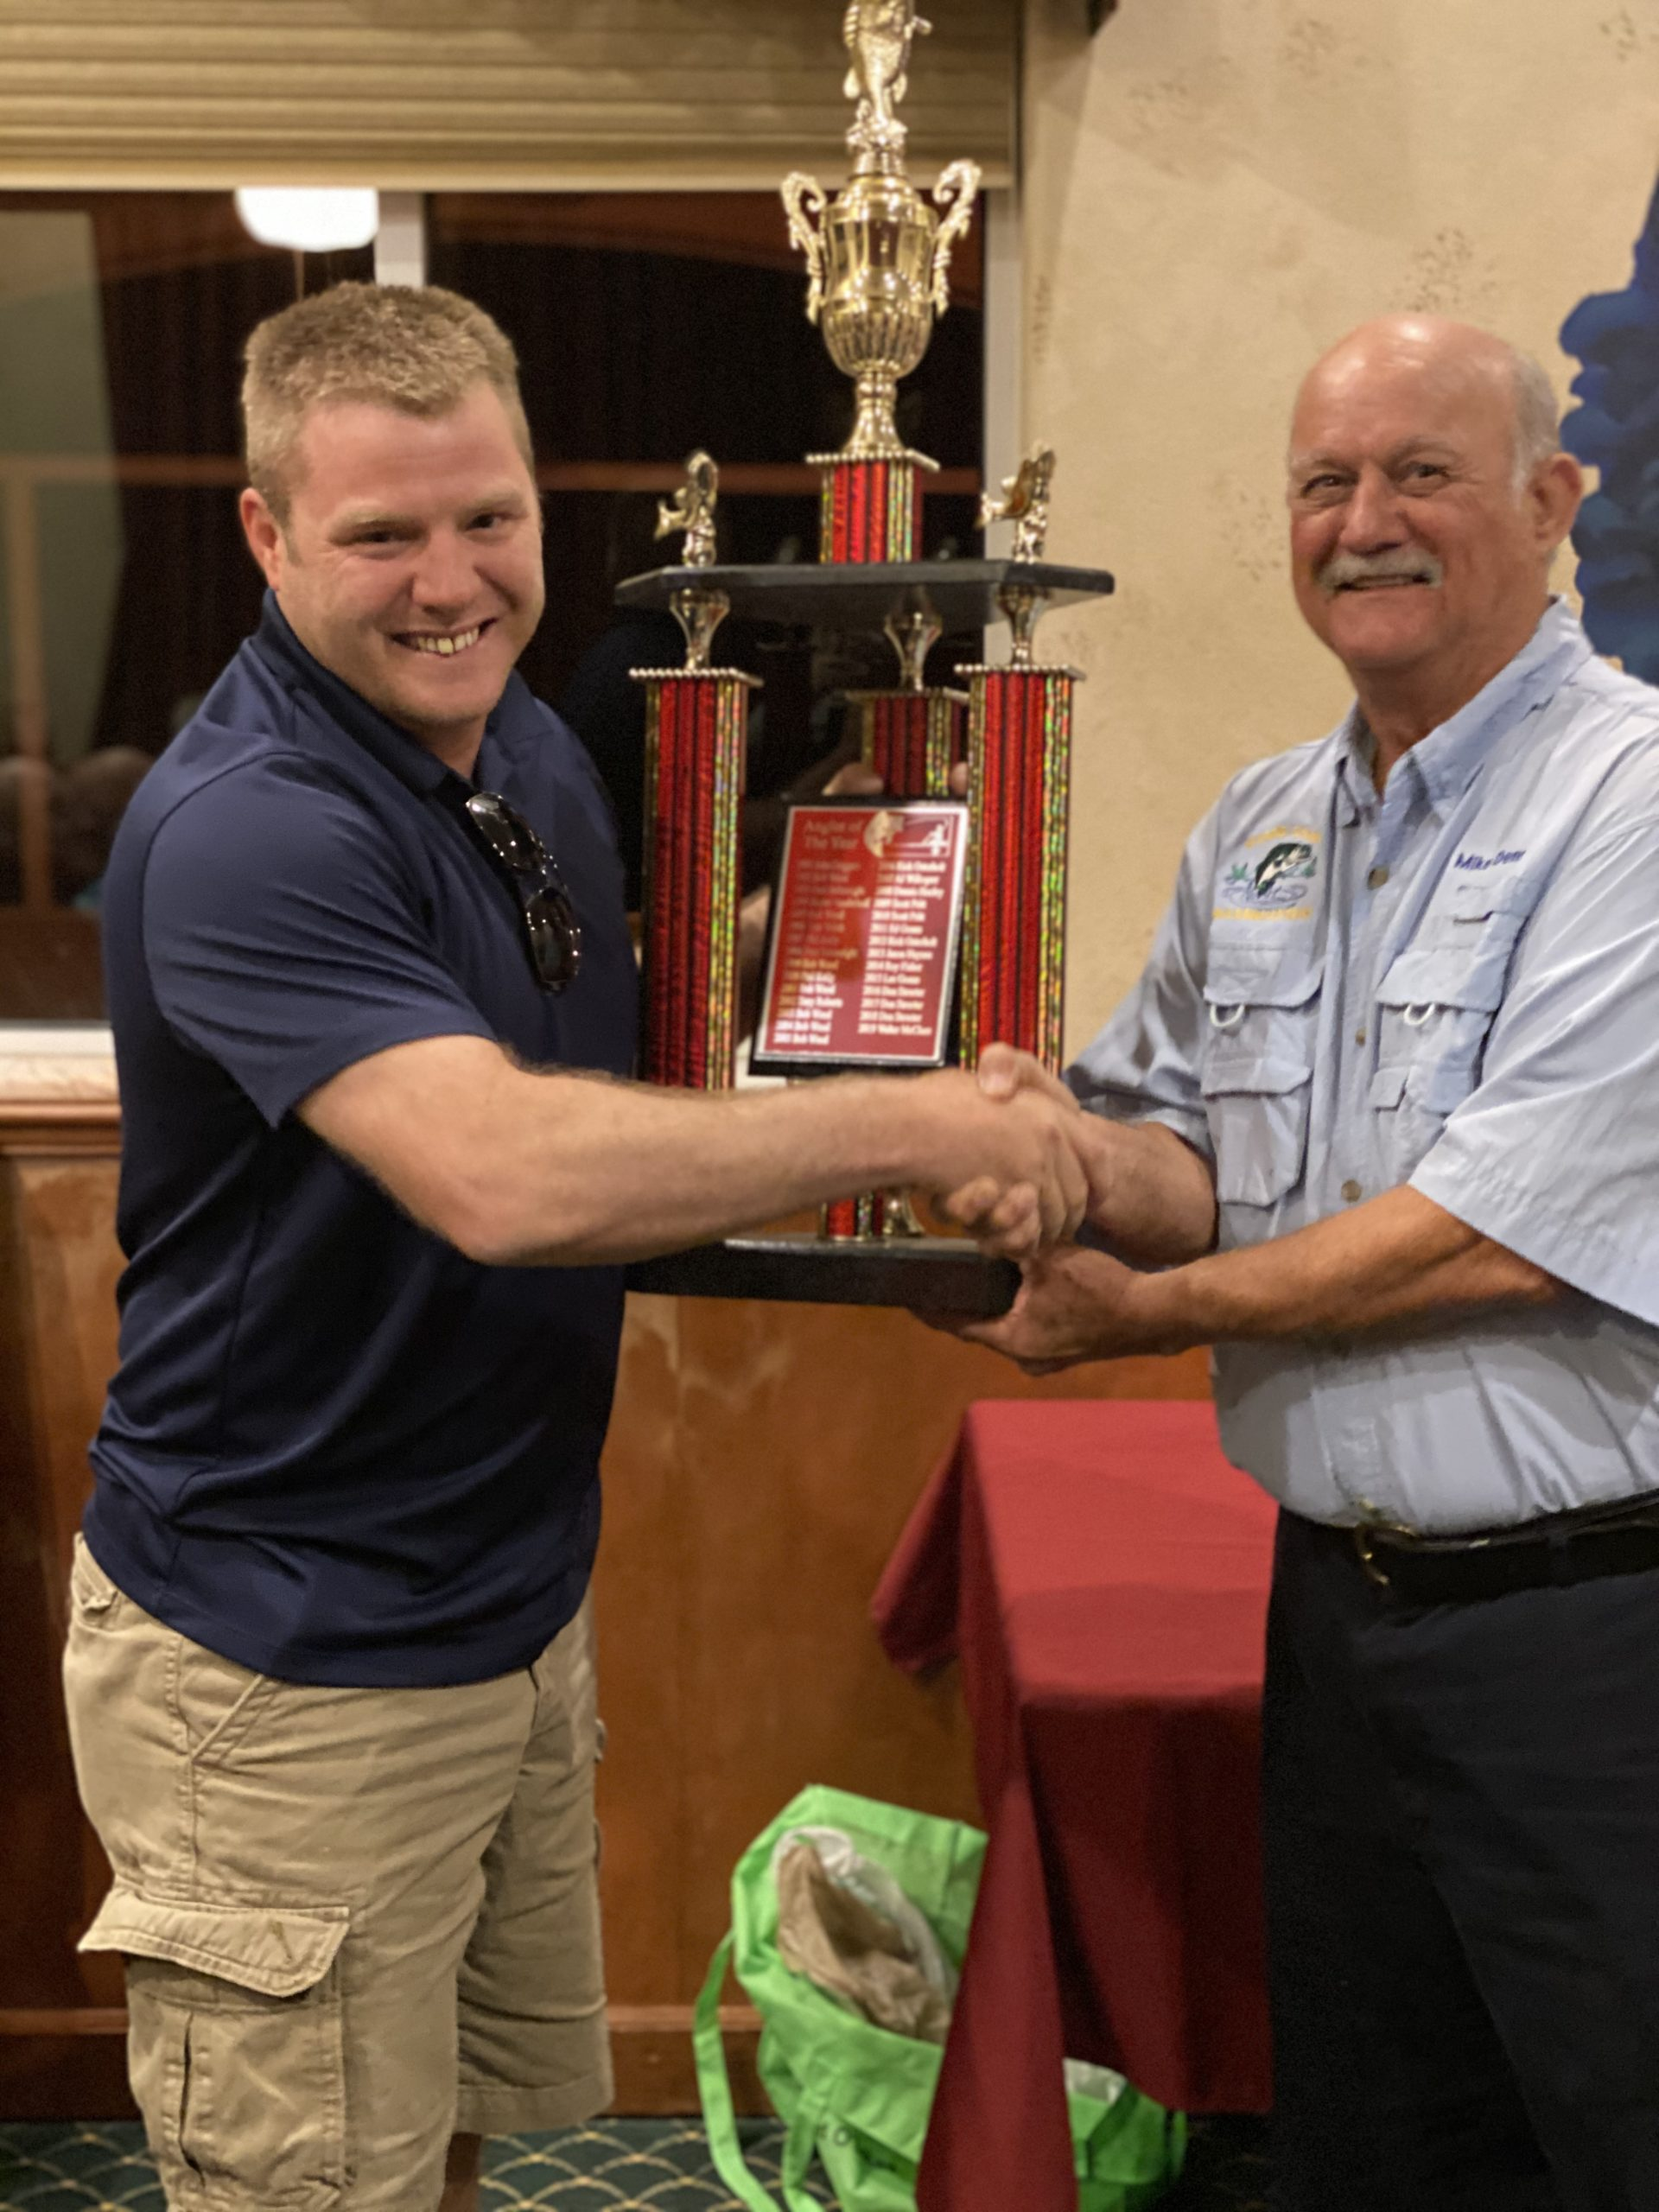 Walter McClure - 2019 Angler of the Year